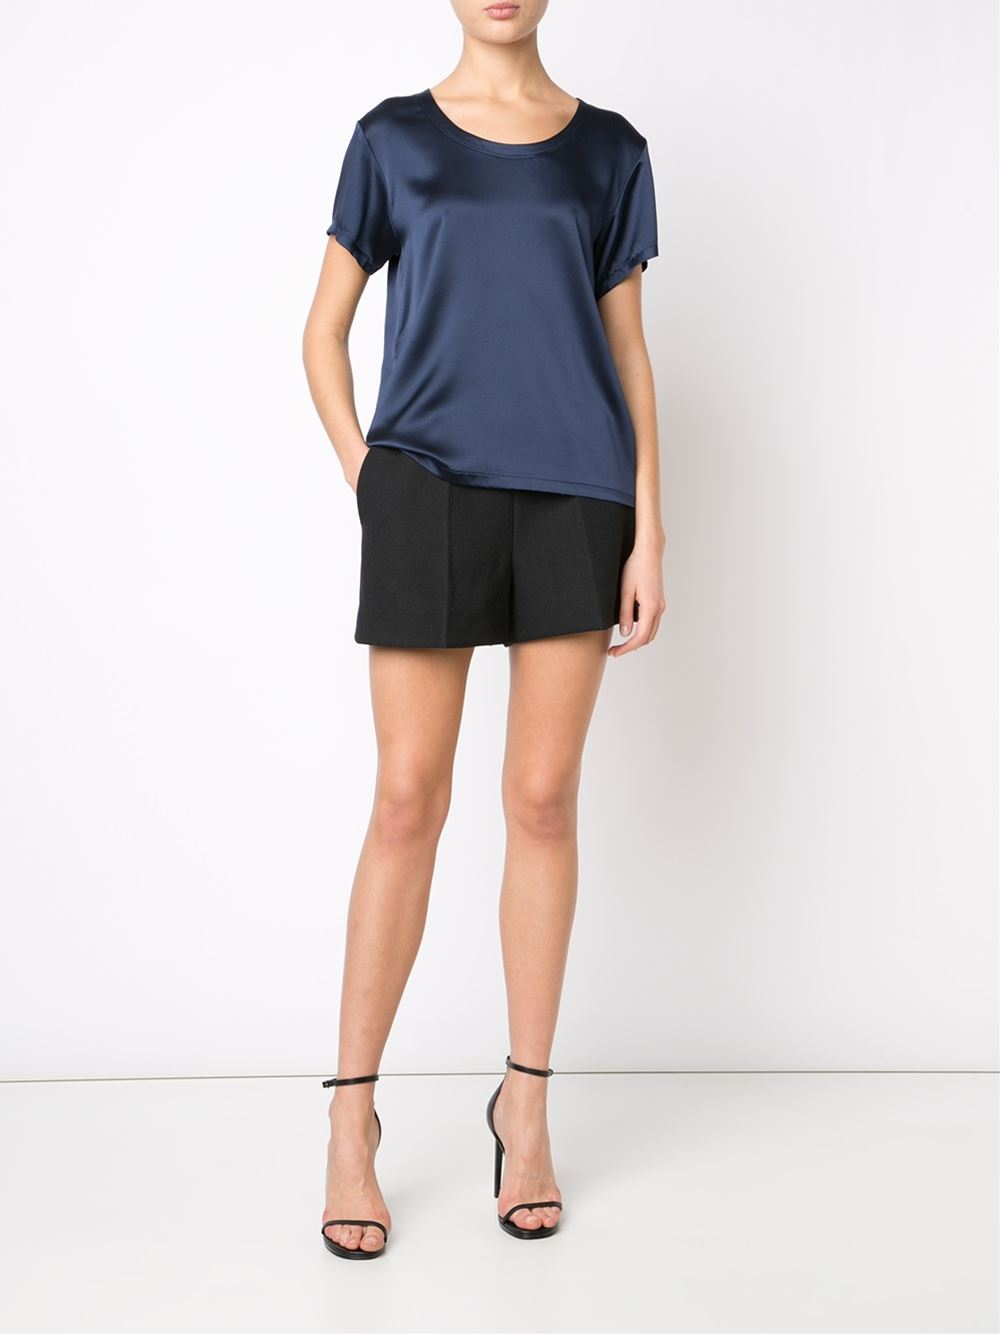 Adam lippes scoop neck t shirt in blue navy lyst for Adam lippes t shirt